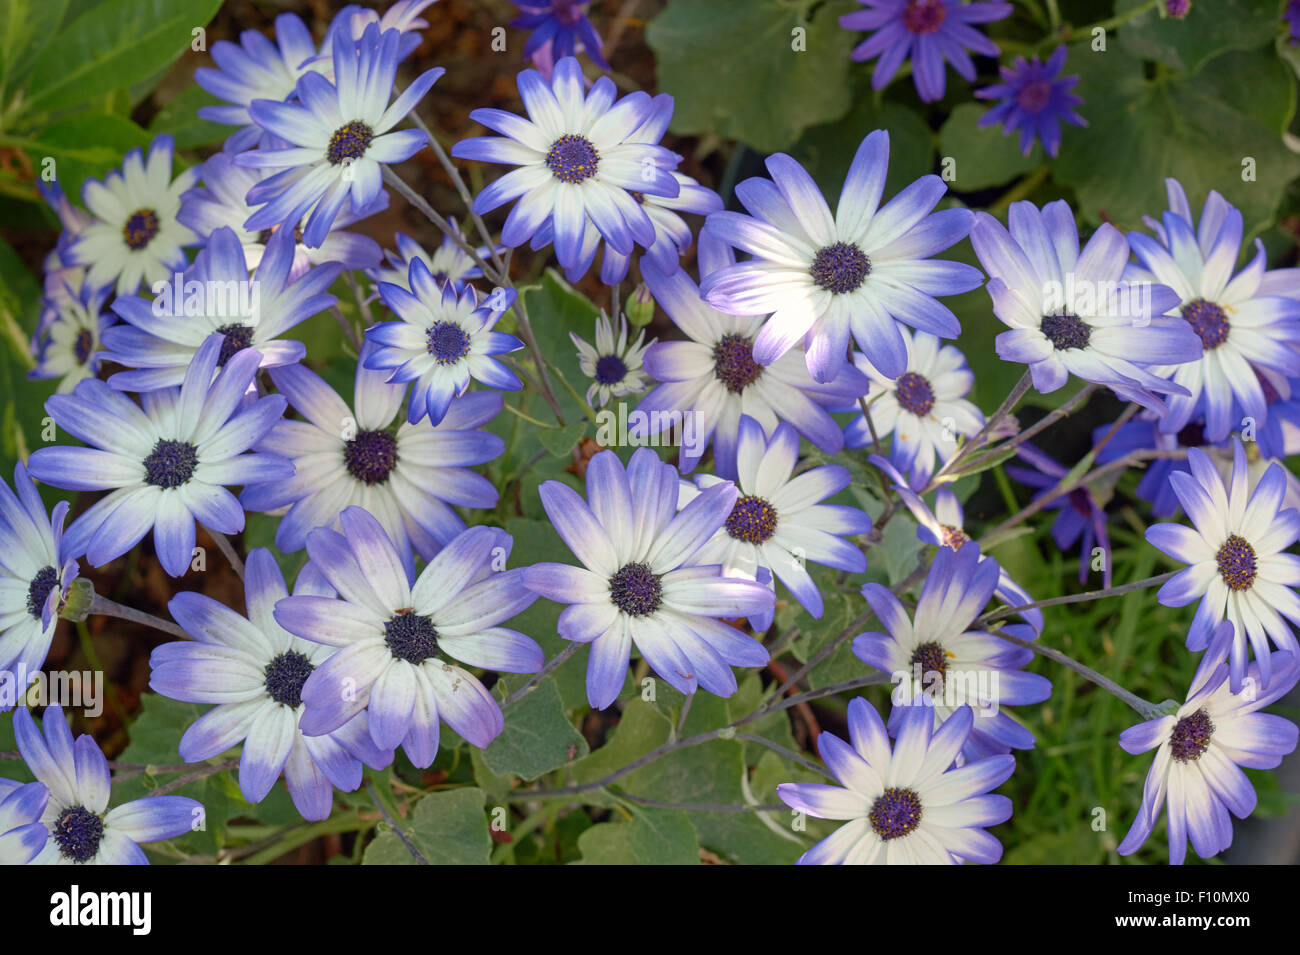 Group of flowers senetti in the garden in summer in Poland - Stock Image